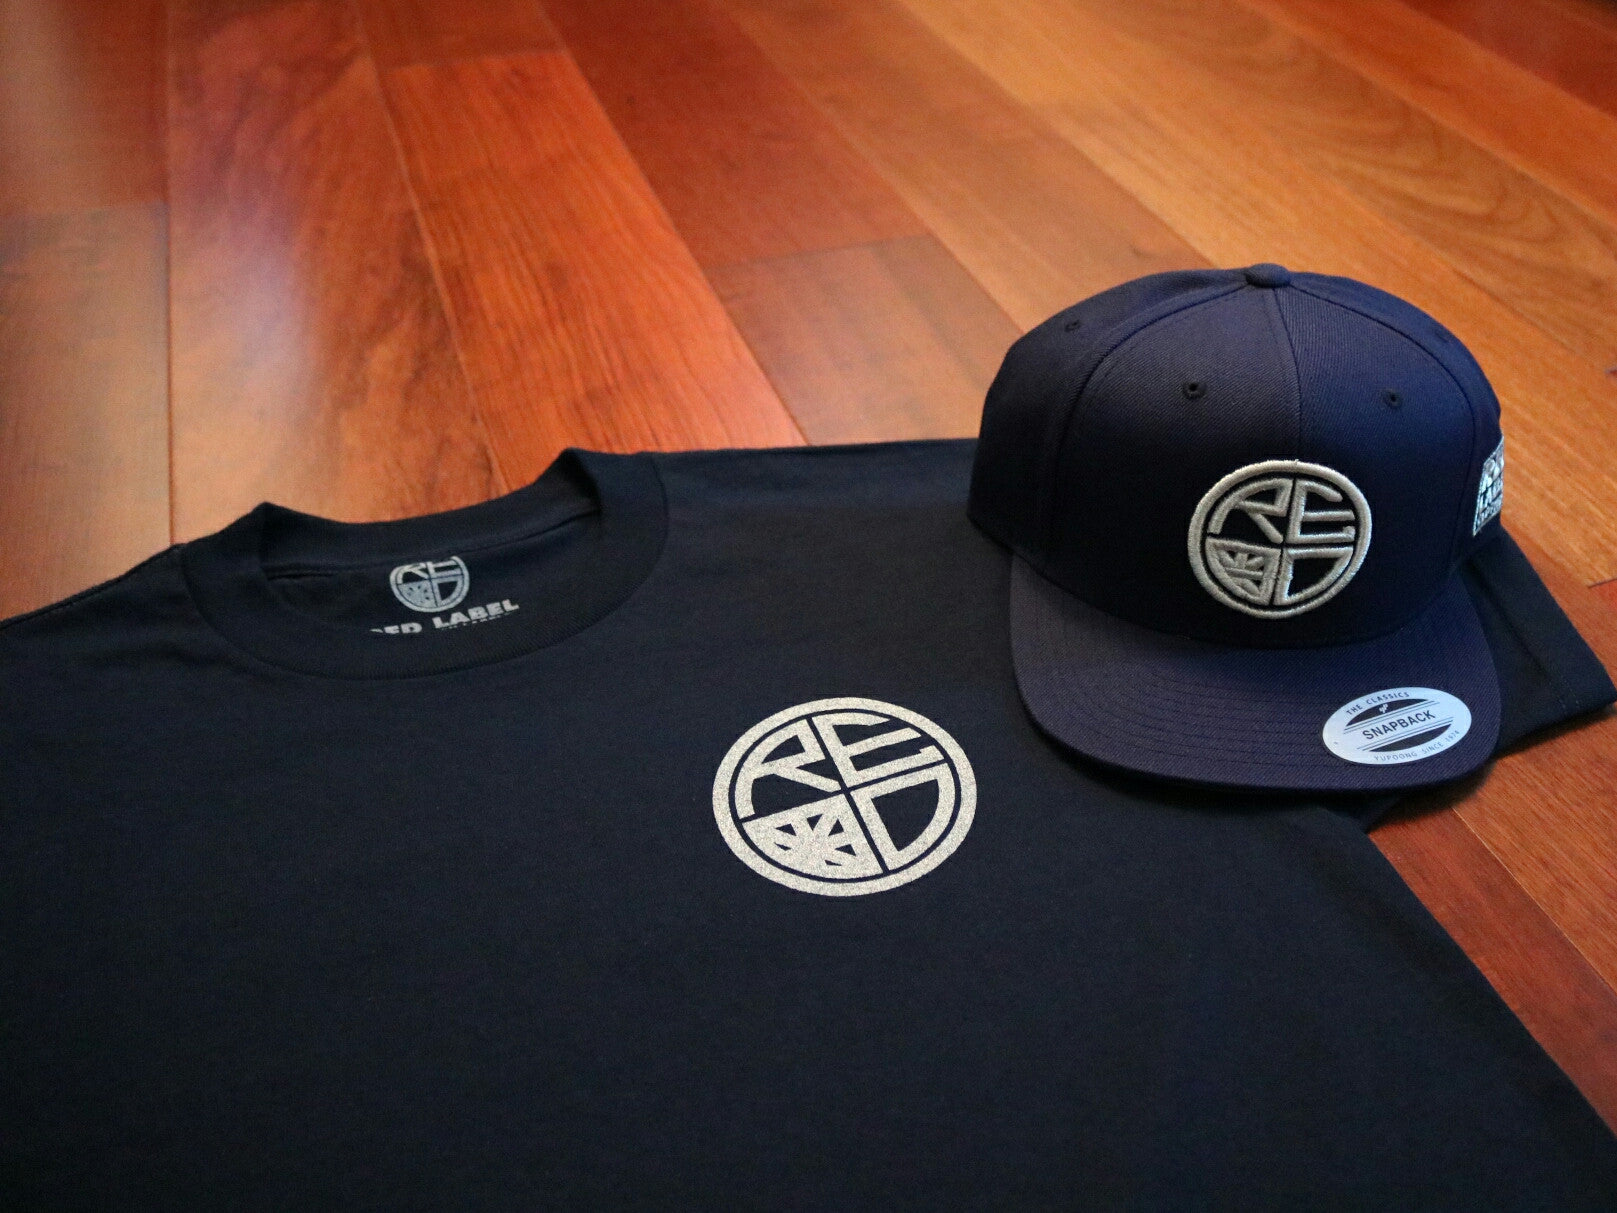 Classic Logo Tee - Navy & Silver - Red Label Clothing Inc